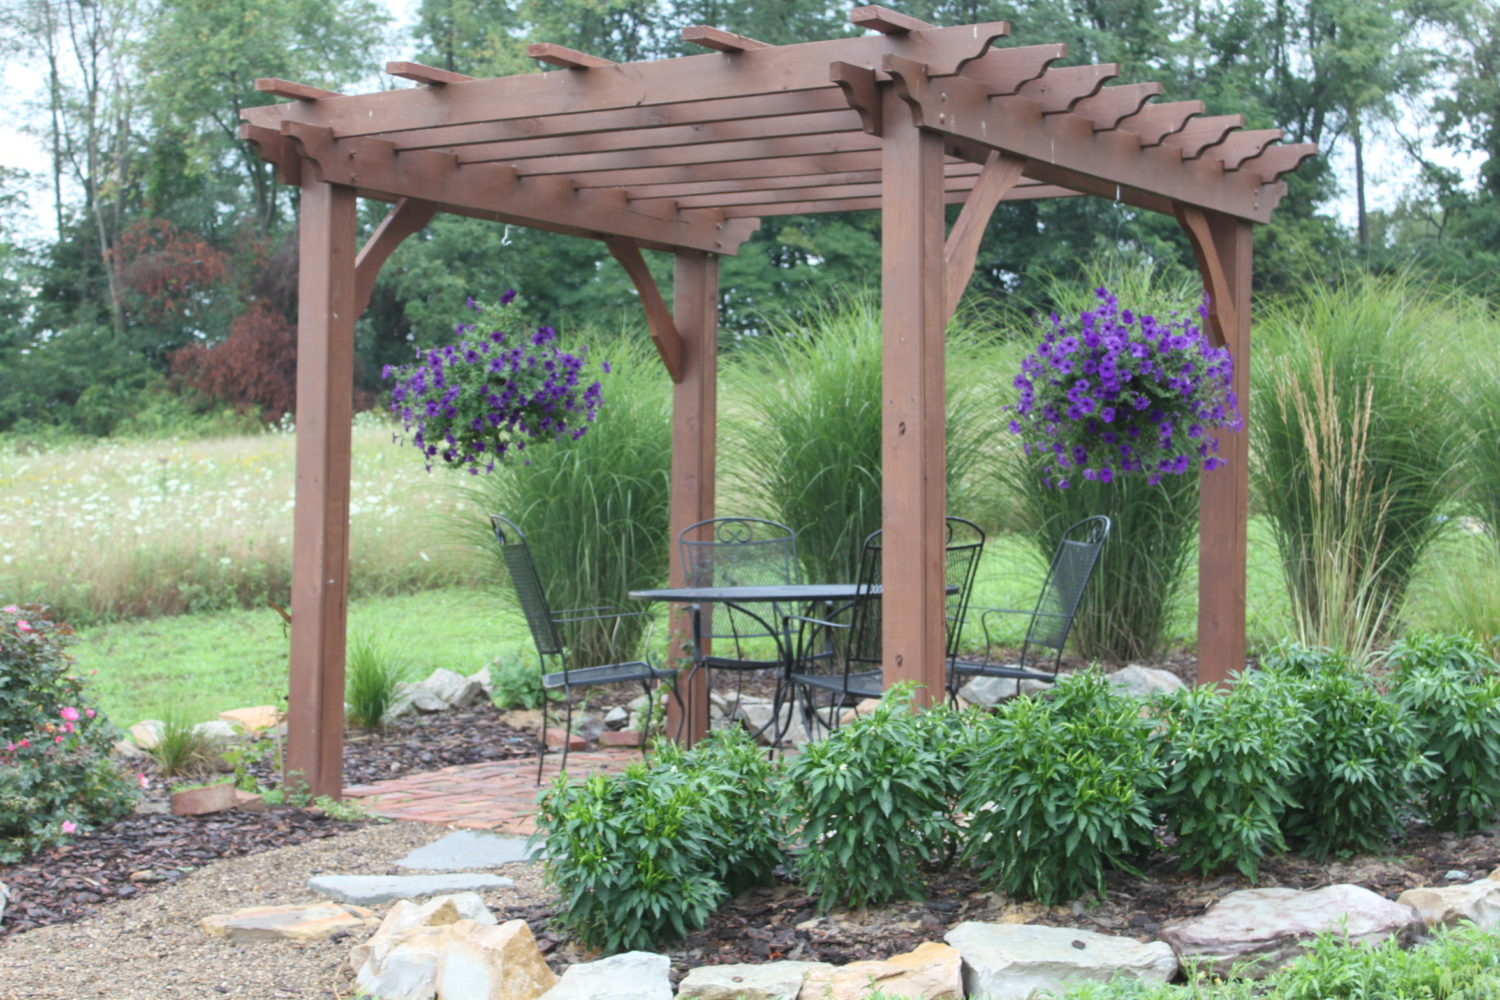 Cost to build pergola - You Can Stain Or Paint Treated Lumber To Match Any Wood Or Decor